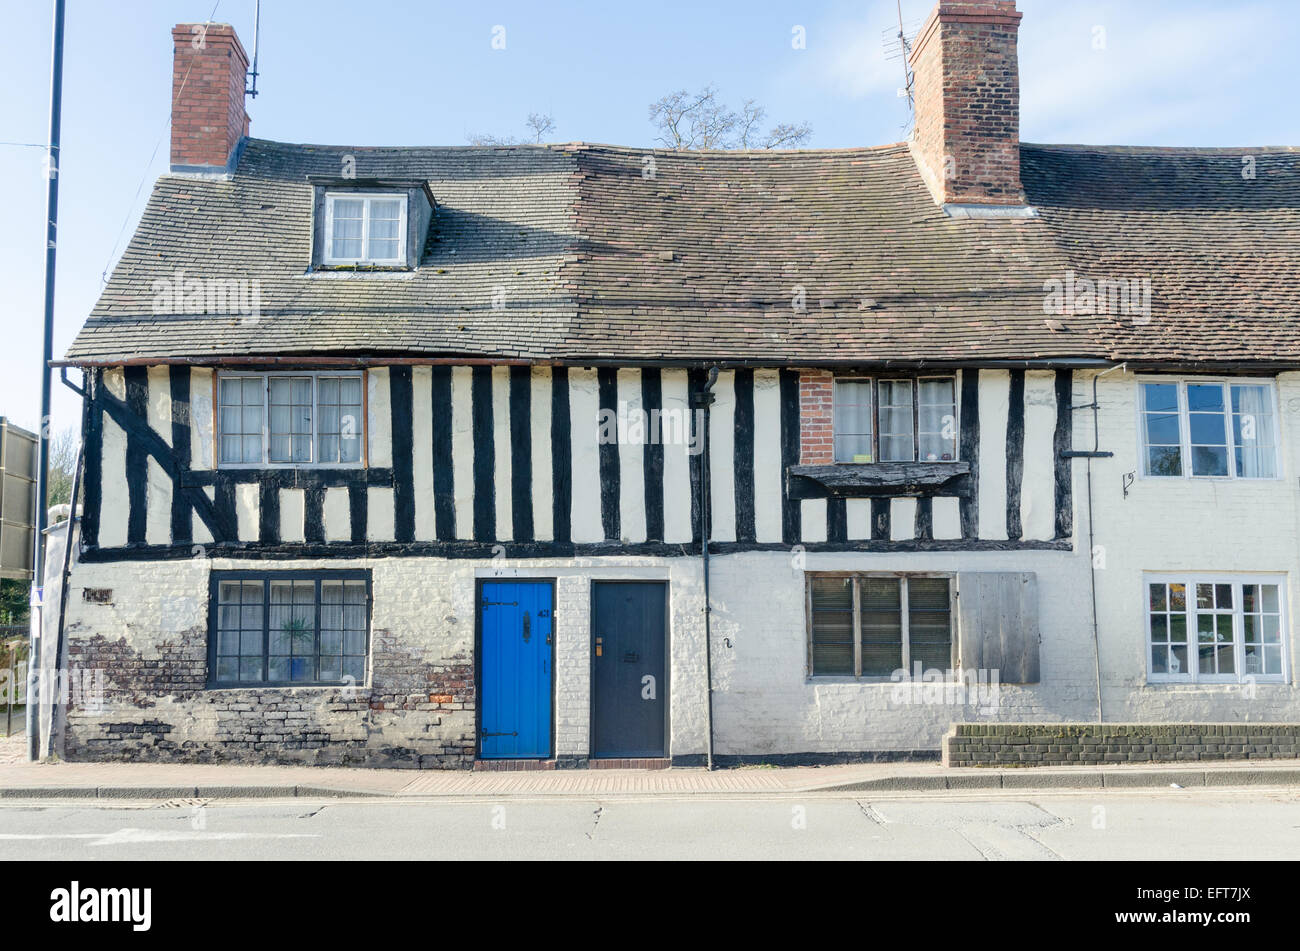 Old half-timbered cottages in the Shropshire town of Bridgnorth - Stock Image